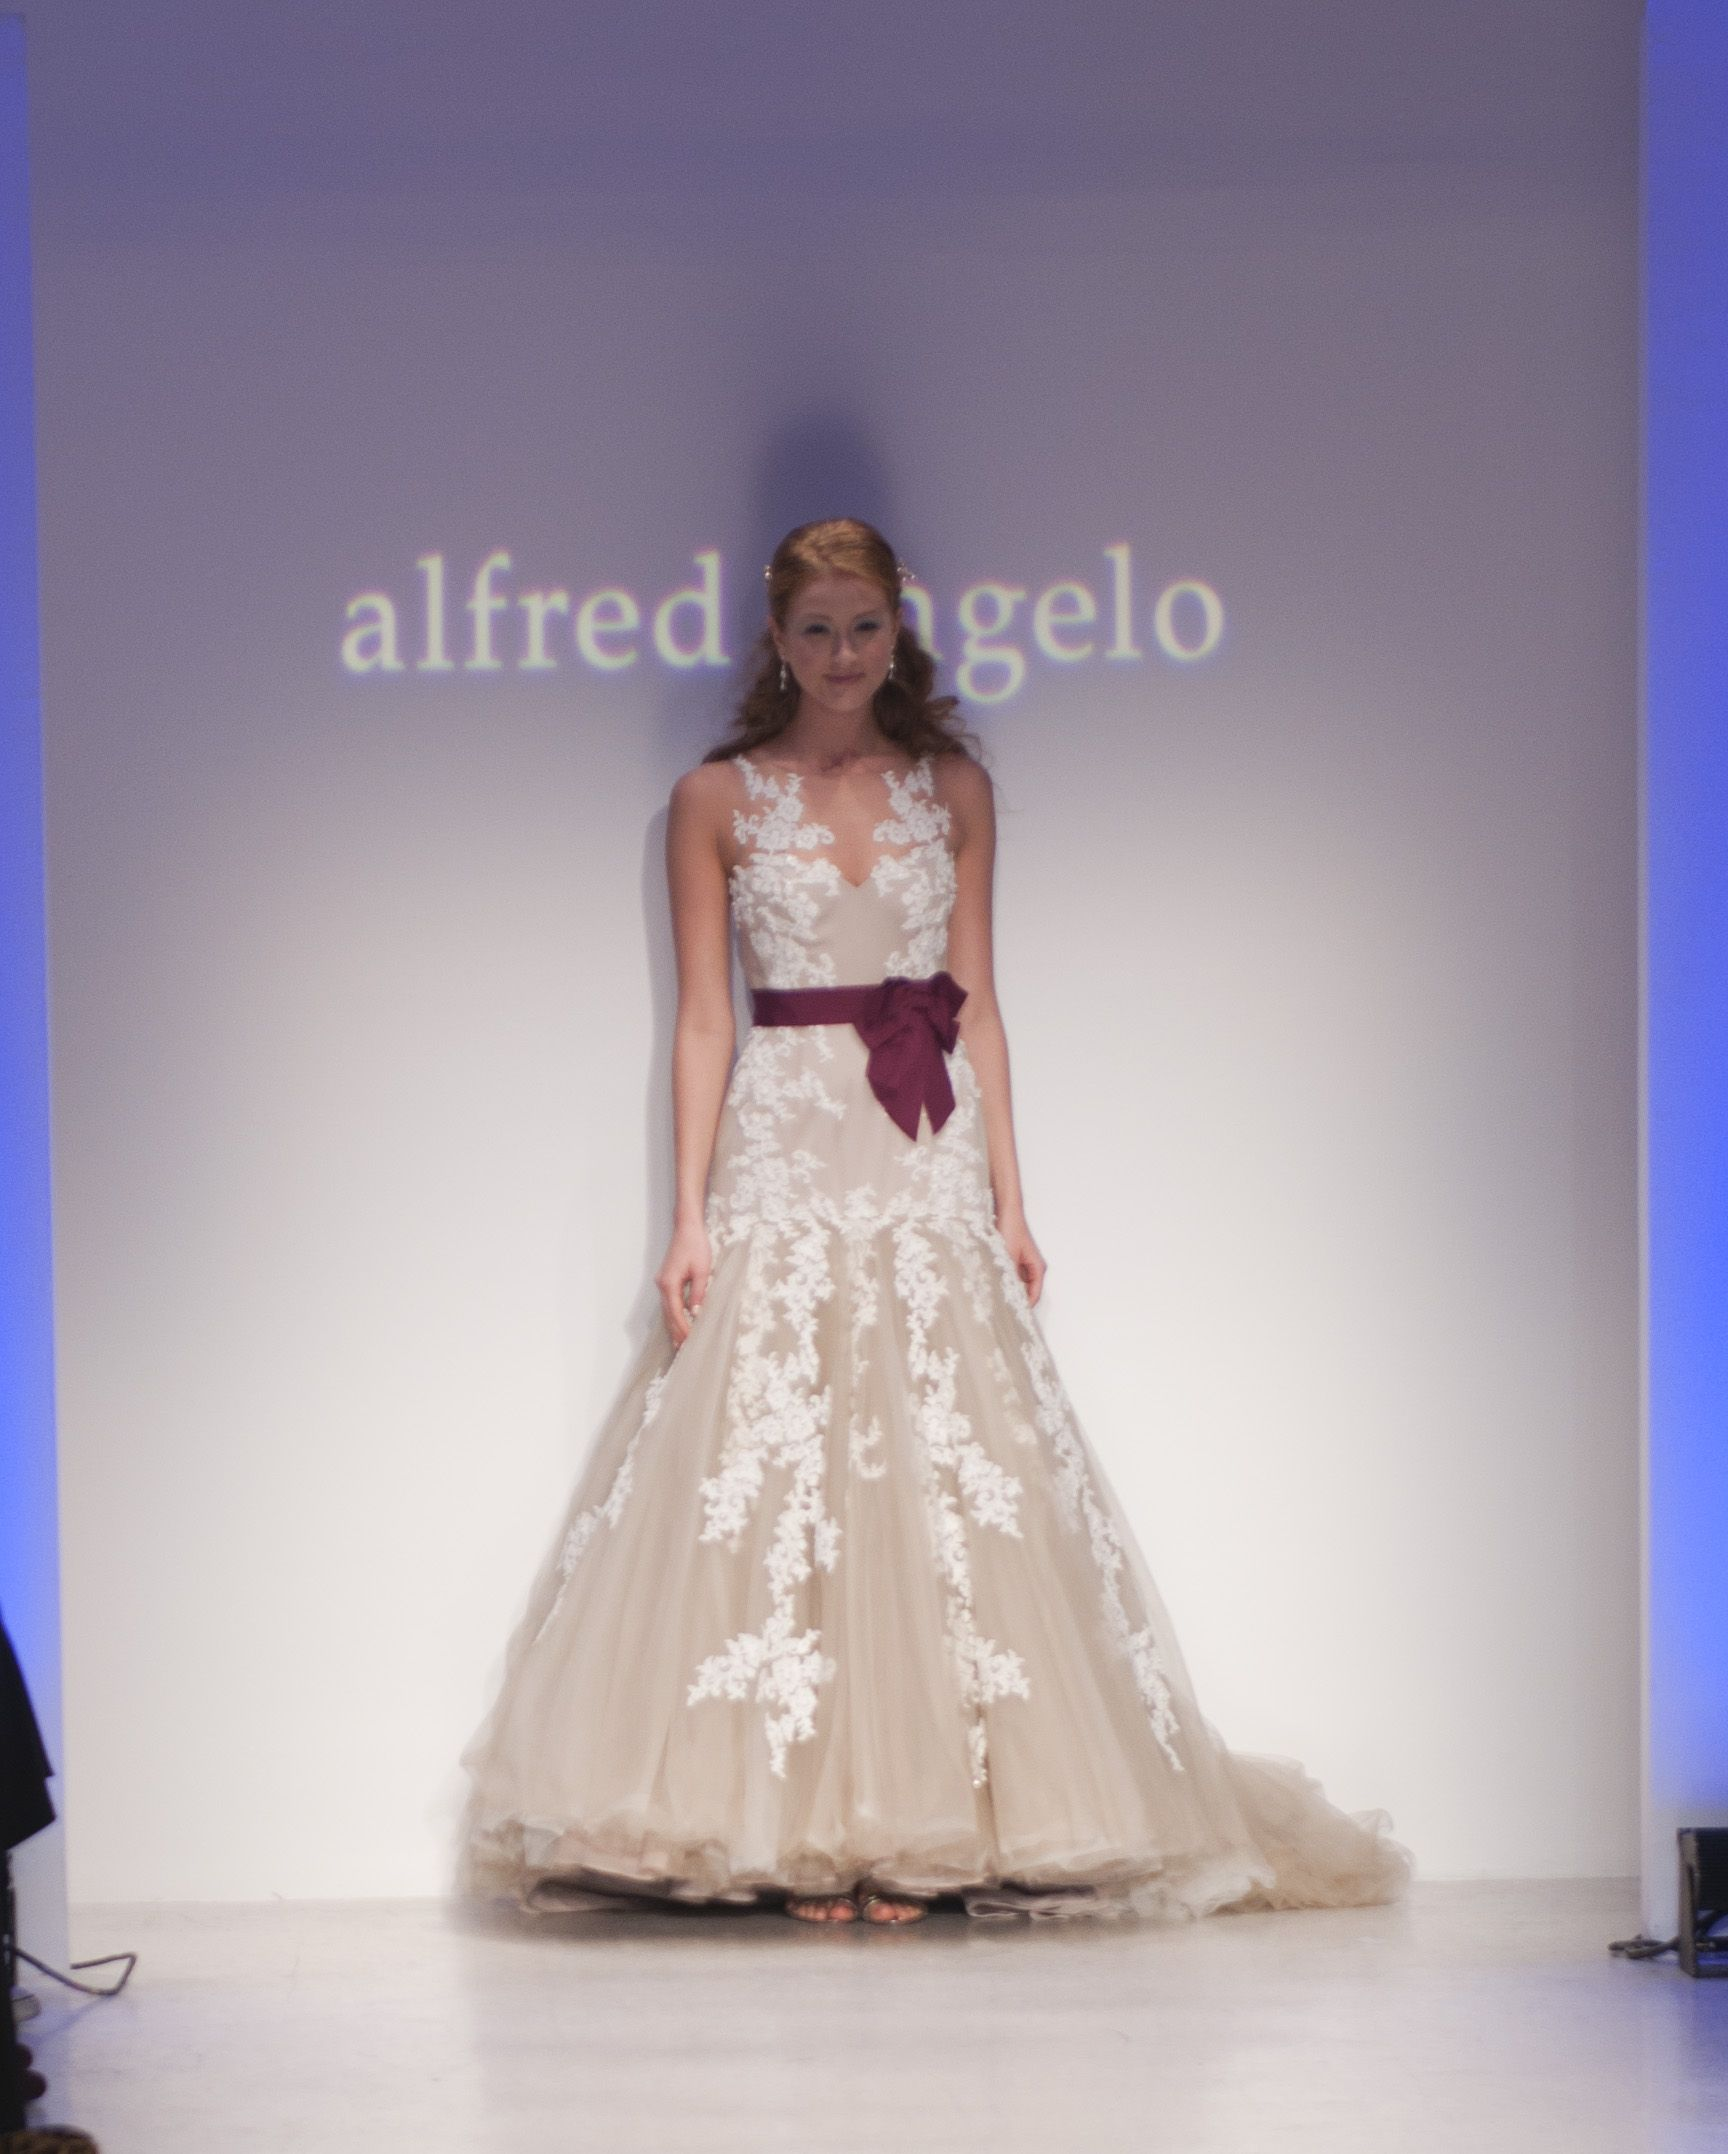 Alfred Angelo 2013 Bridal Gown Designs